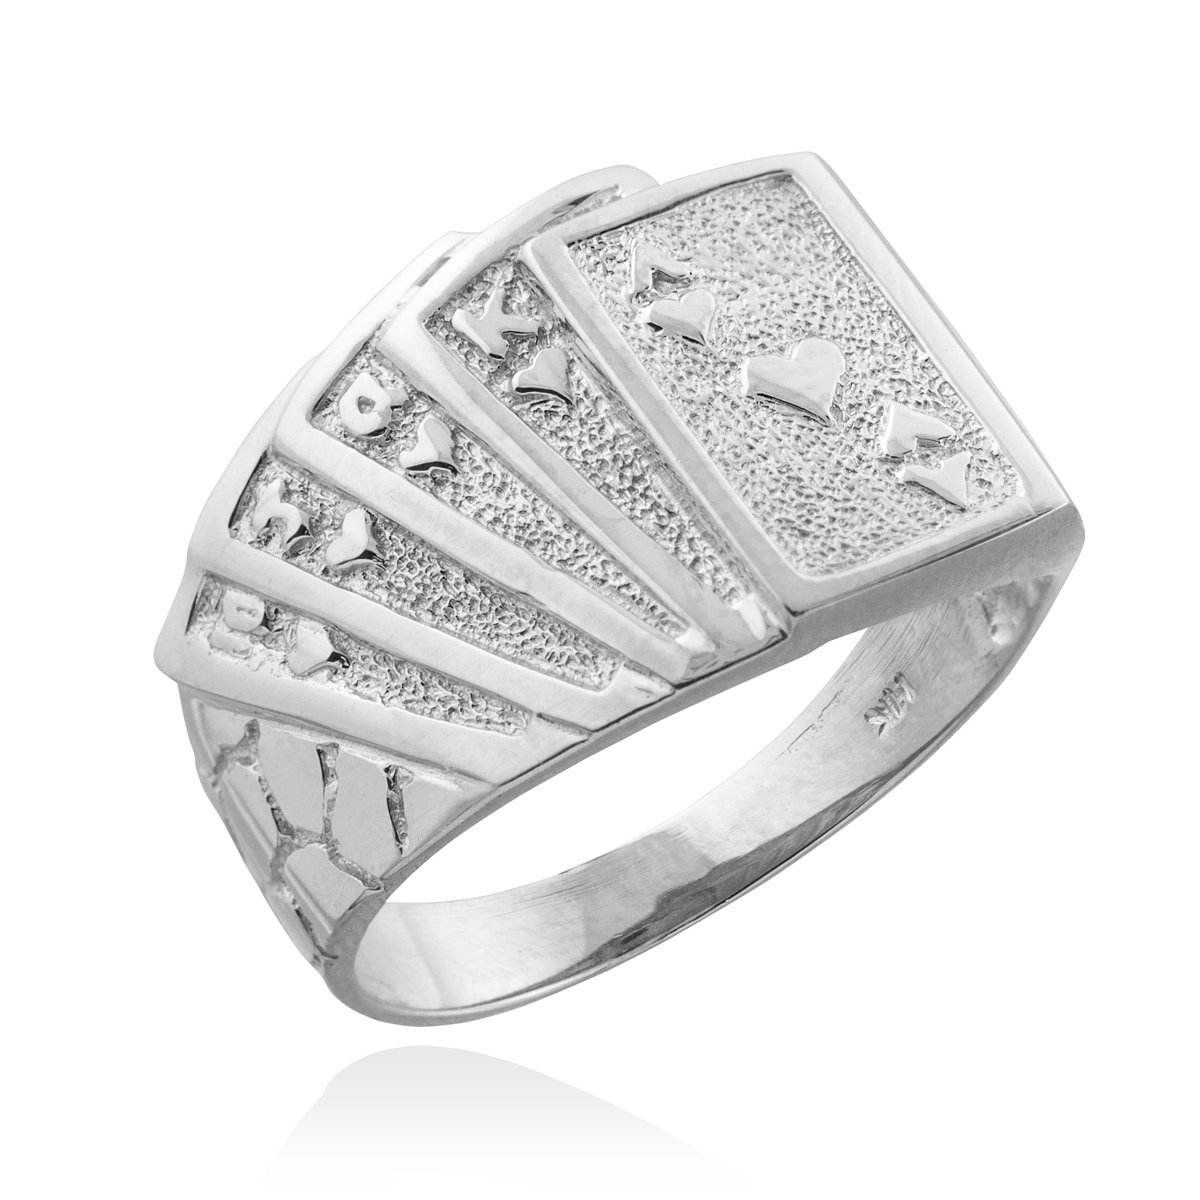 Men's 925 Sterling Silver Lucky Nugget Band Royal Flush of Hearts Poker Ring (Size 6.25) by Men's Fine Jewelry (Image #1)